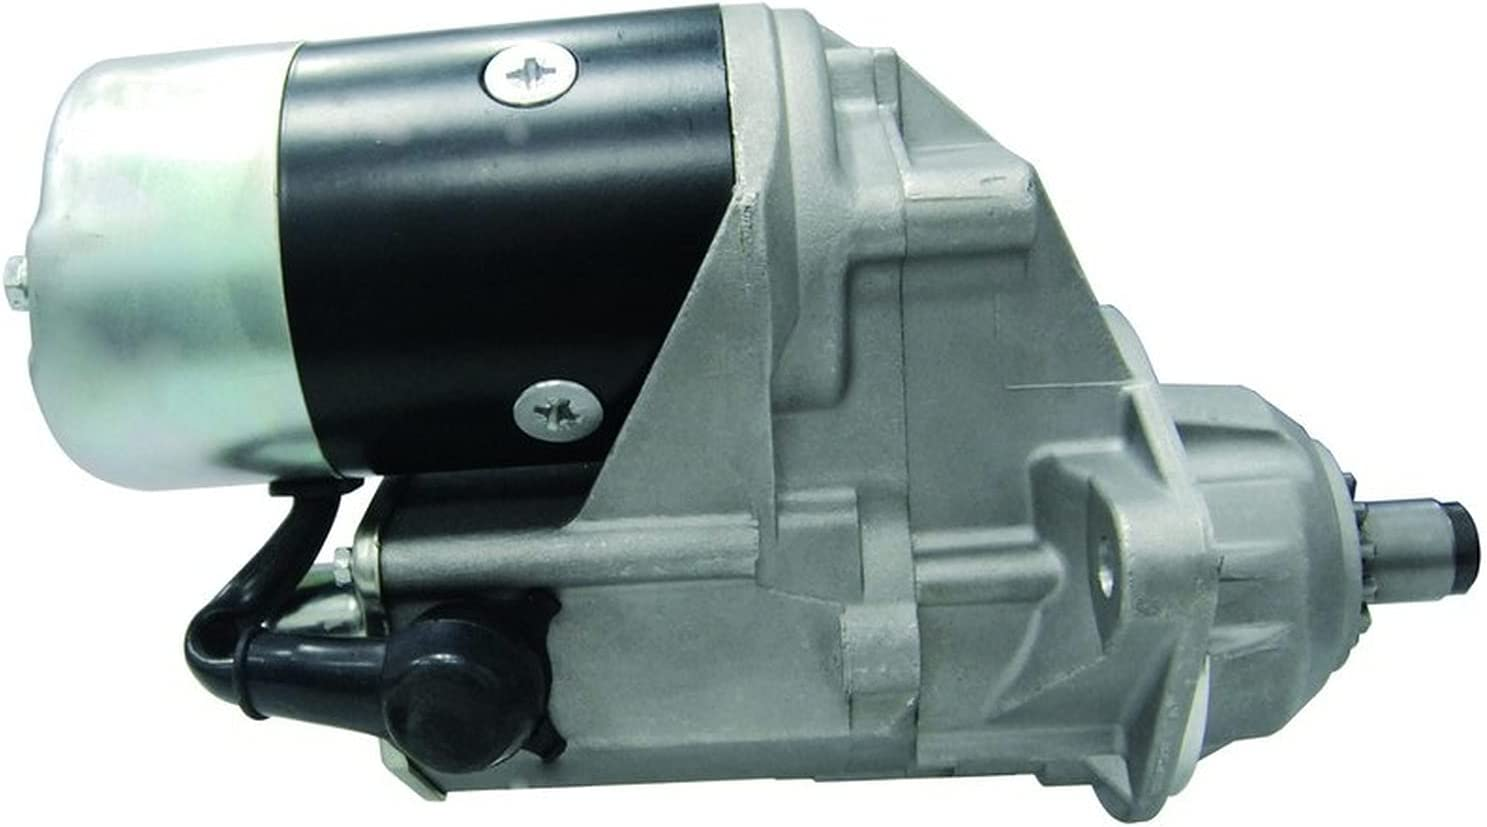 New Starter Replacement For Case Skid Die IH Steer - 70XT 25% Baltimore Mall OFF 4T-390